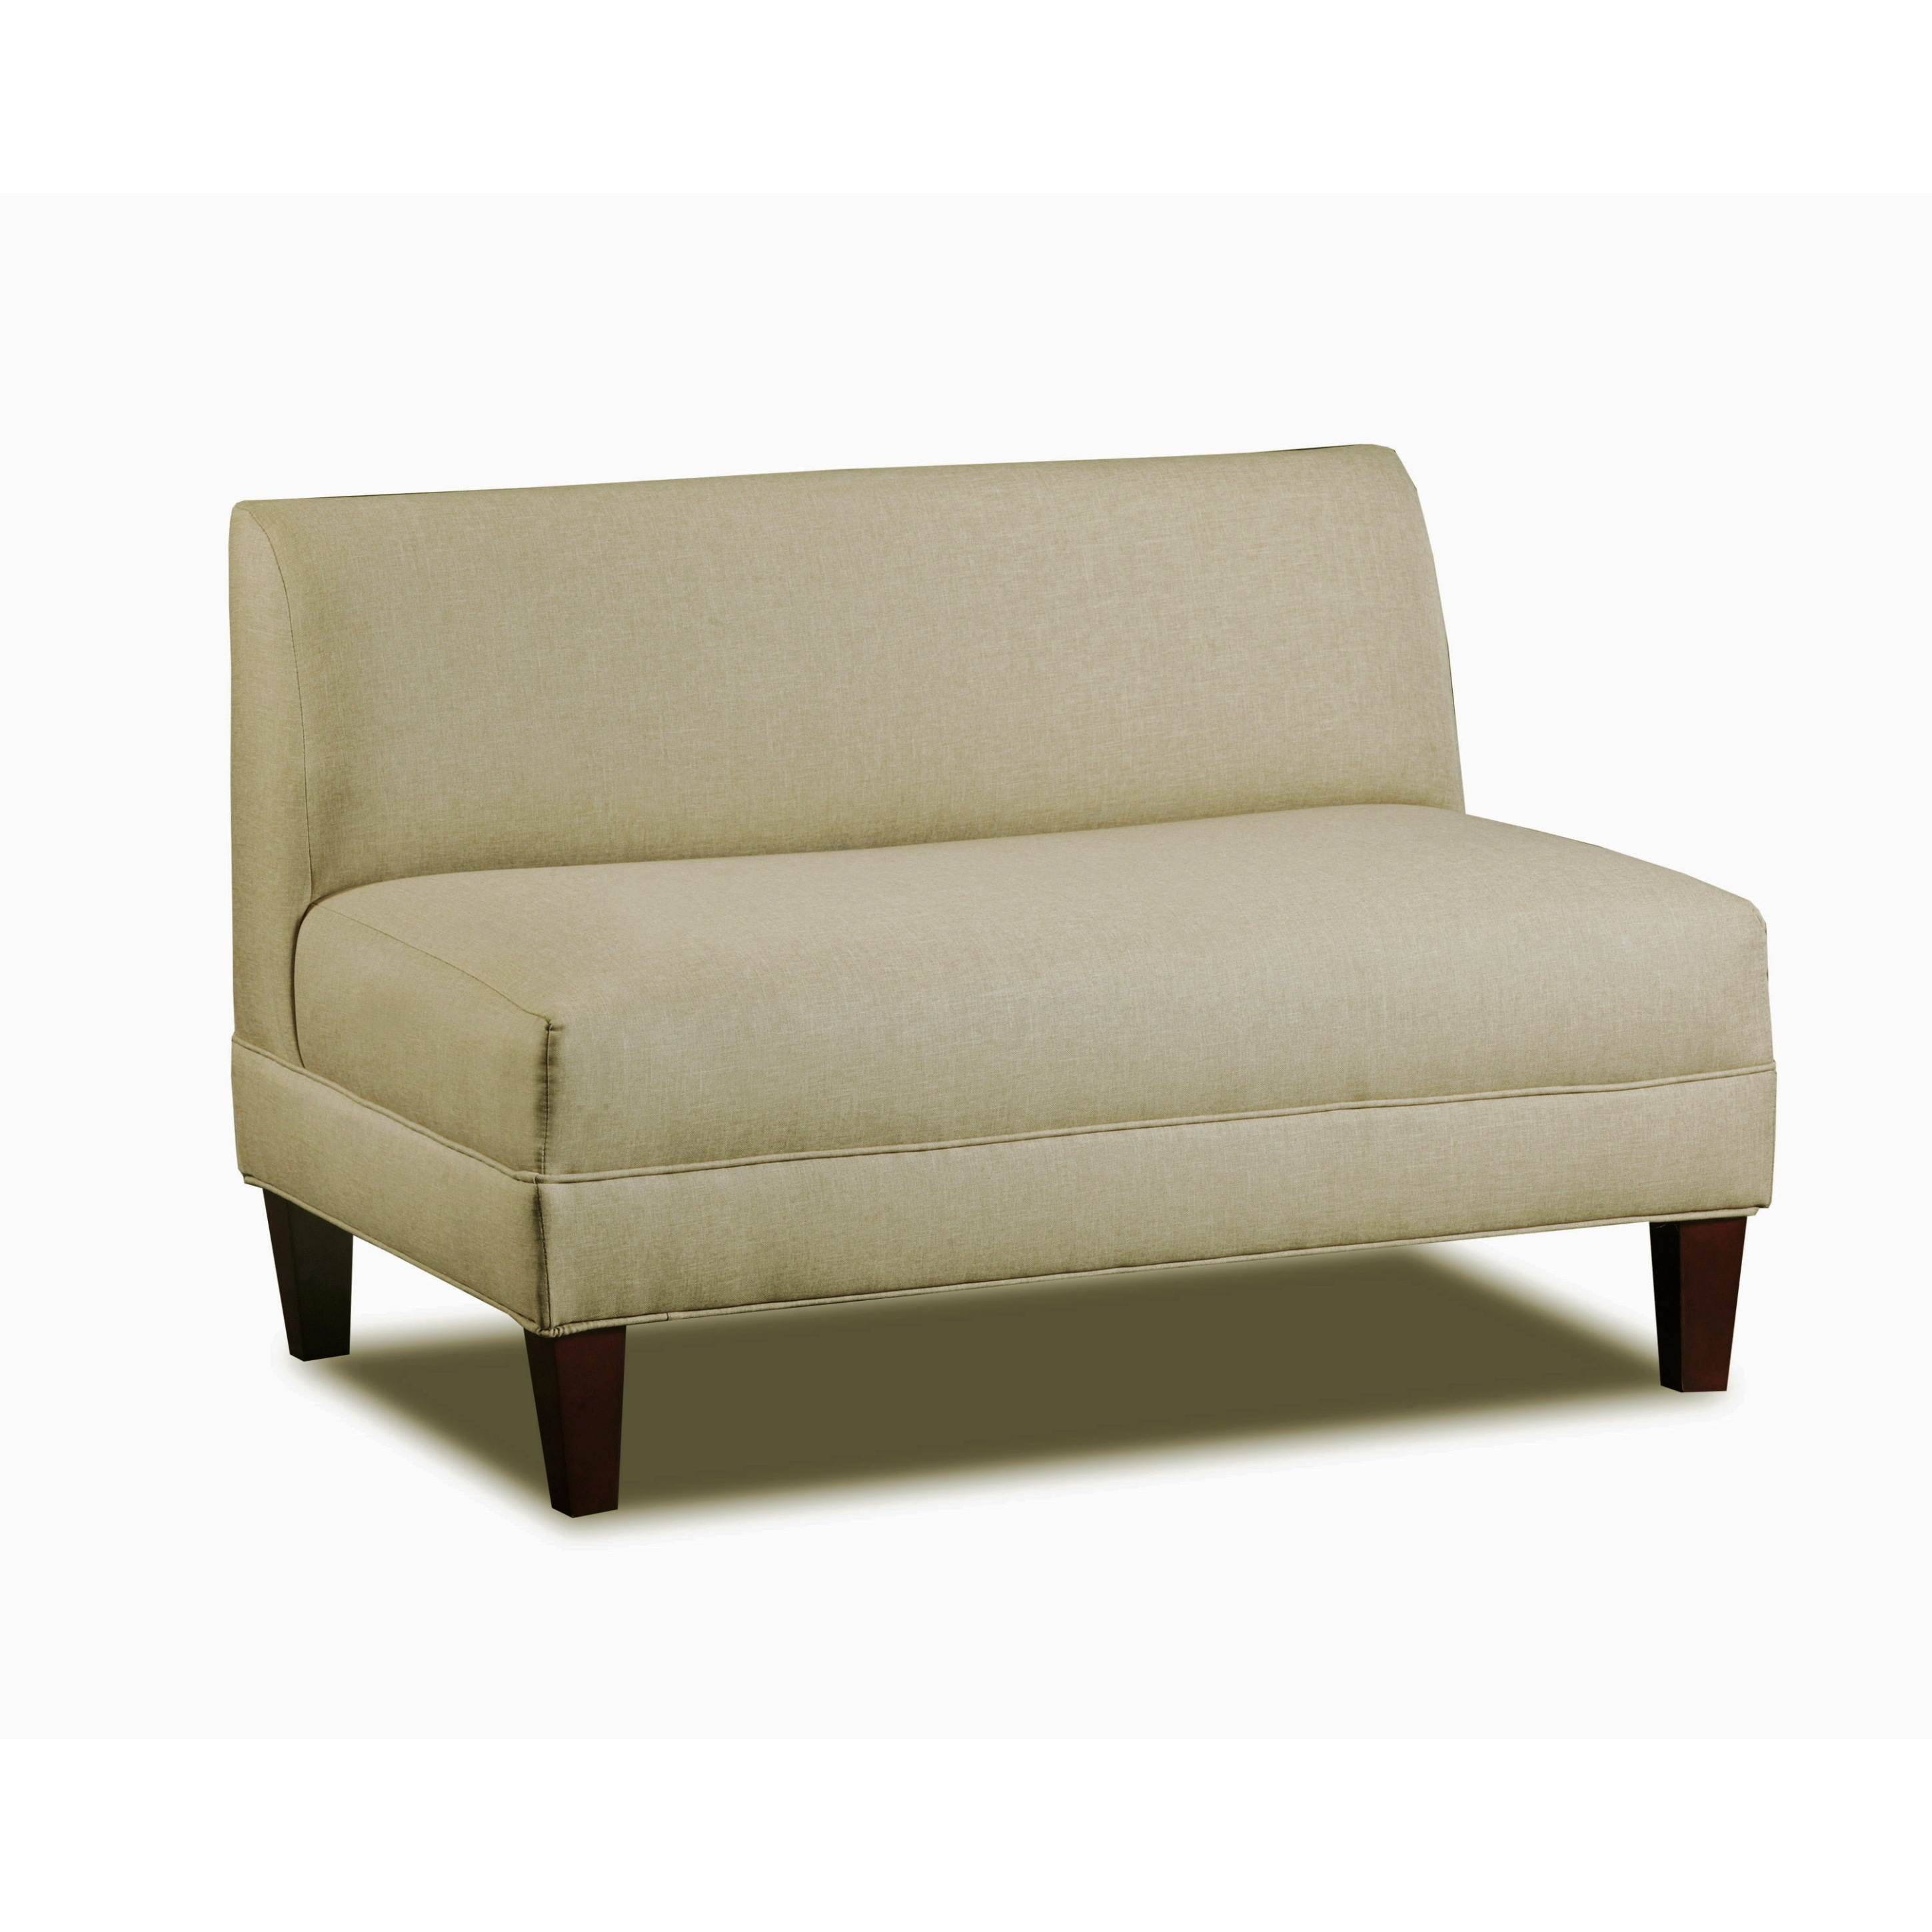 Carolina Accents Briley Sand Armless Loveseat